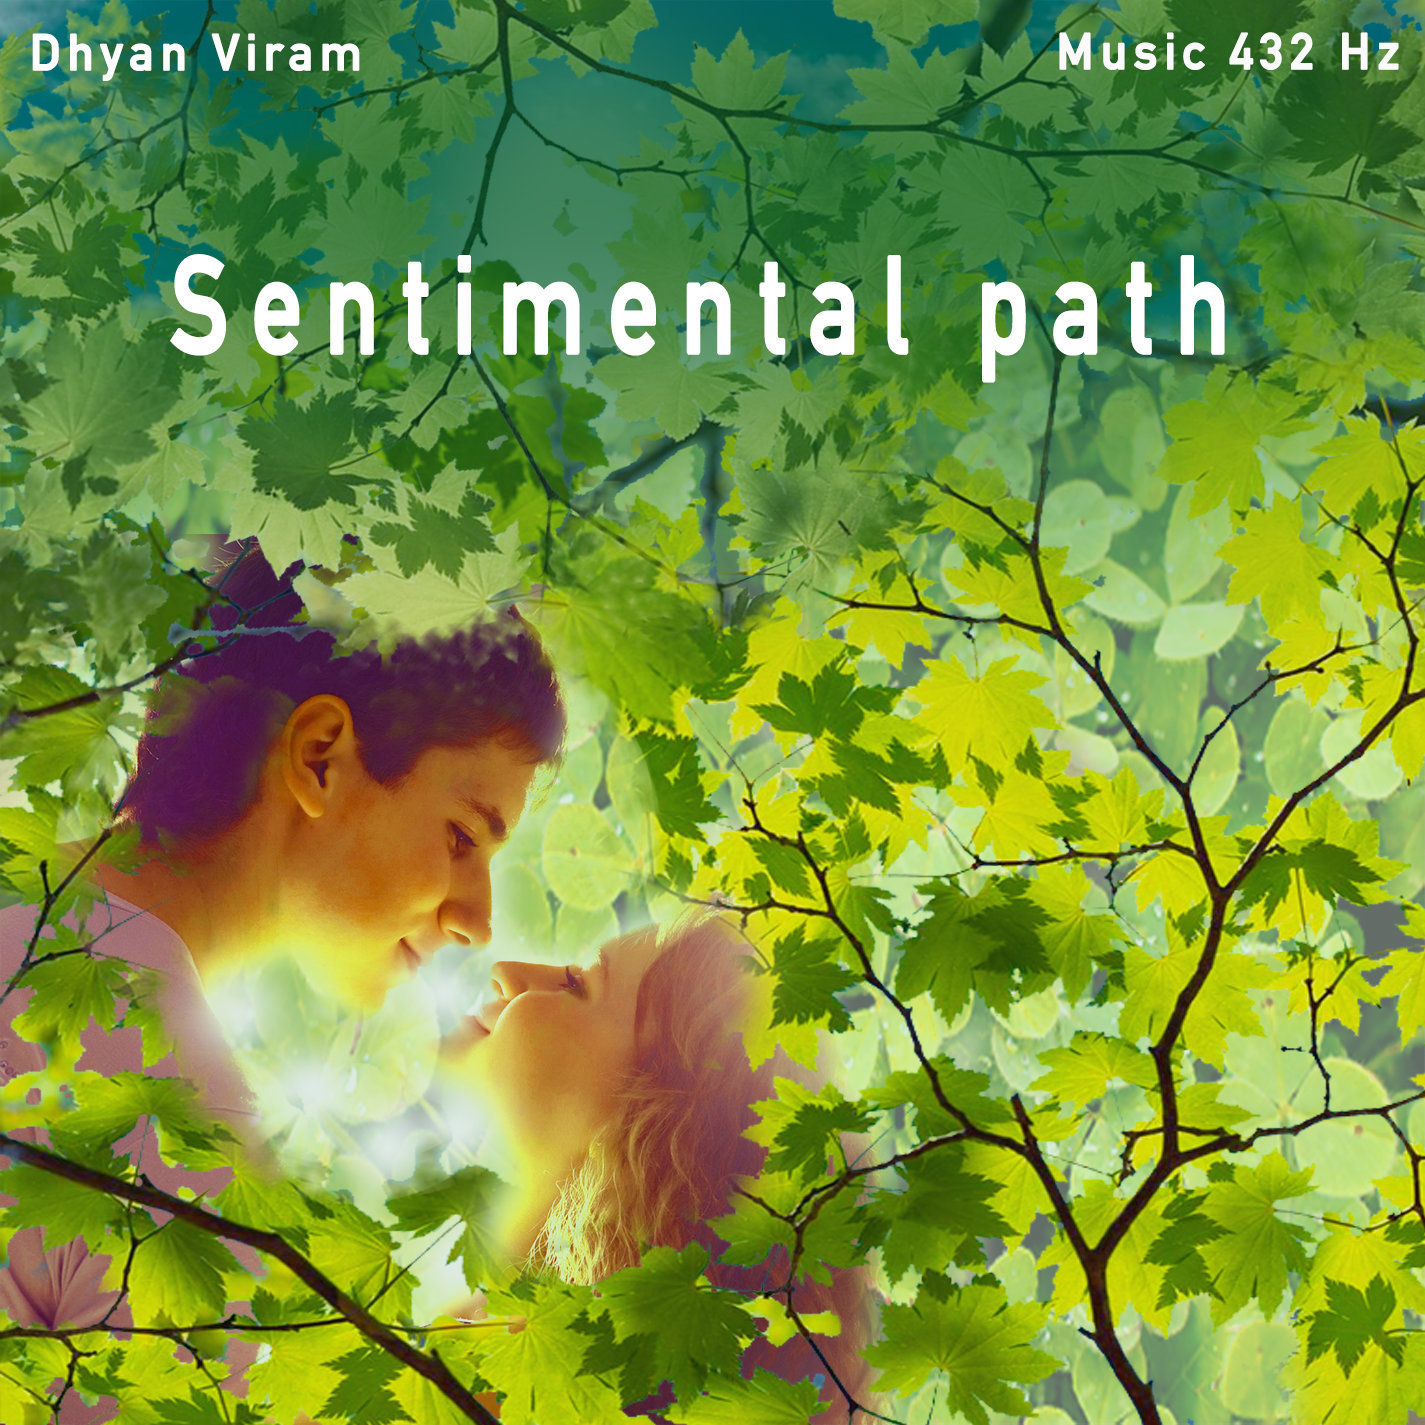 Sentimental path